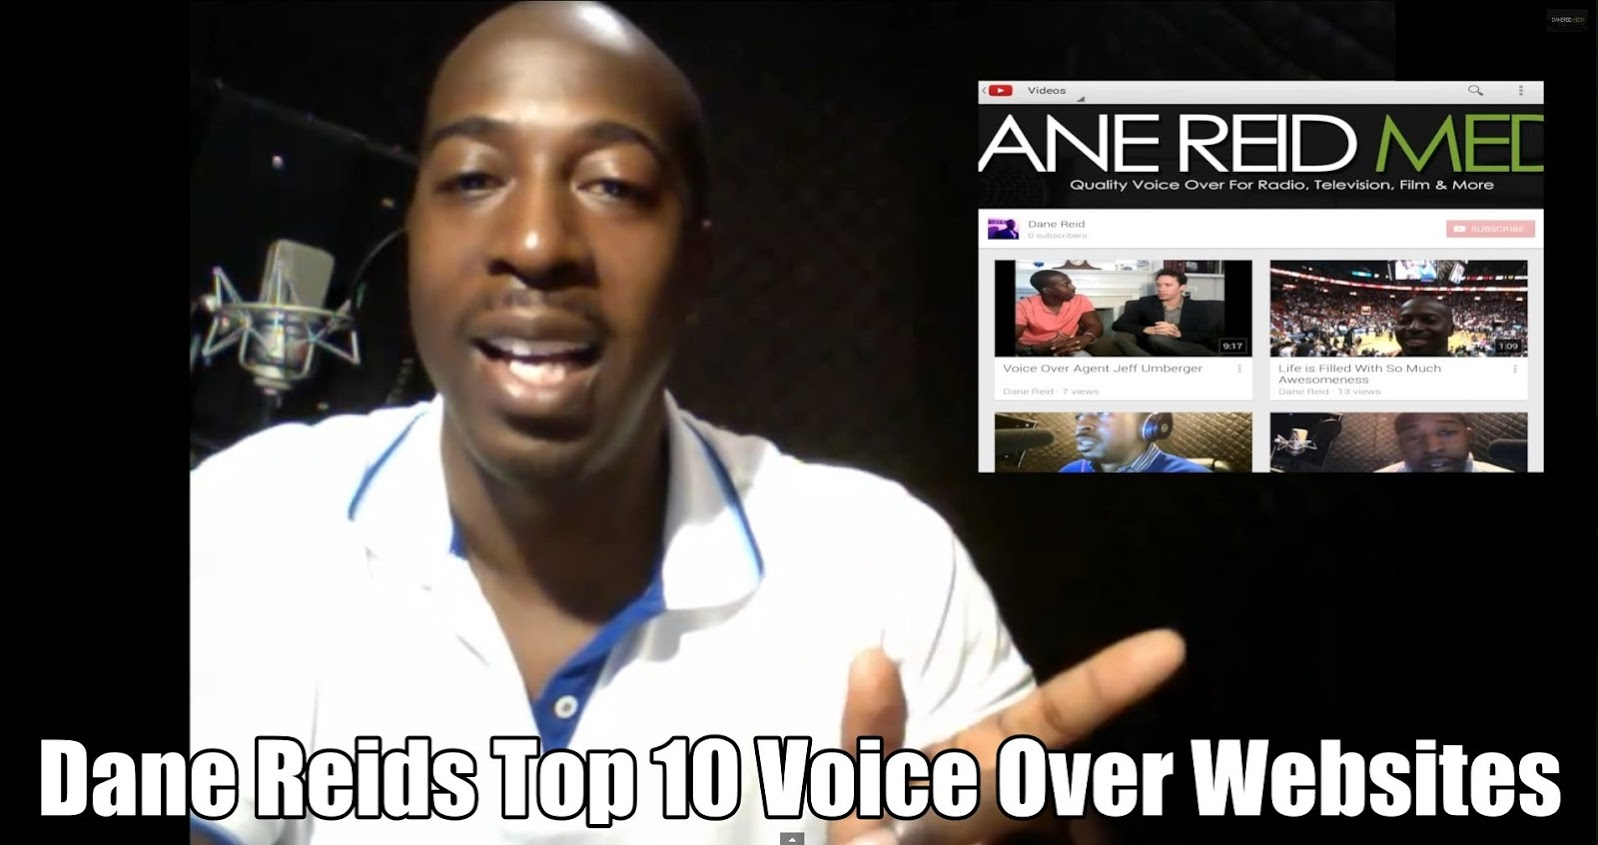 Dane Reids10 Top Voiceover Websites